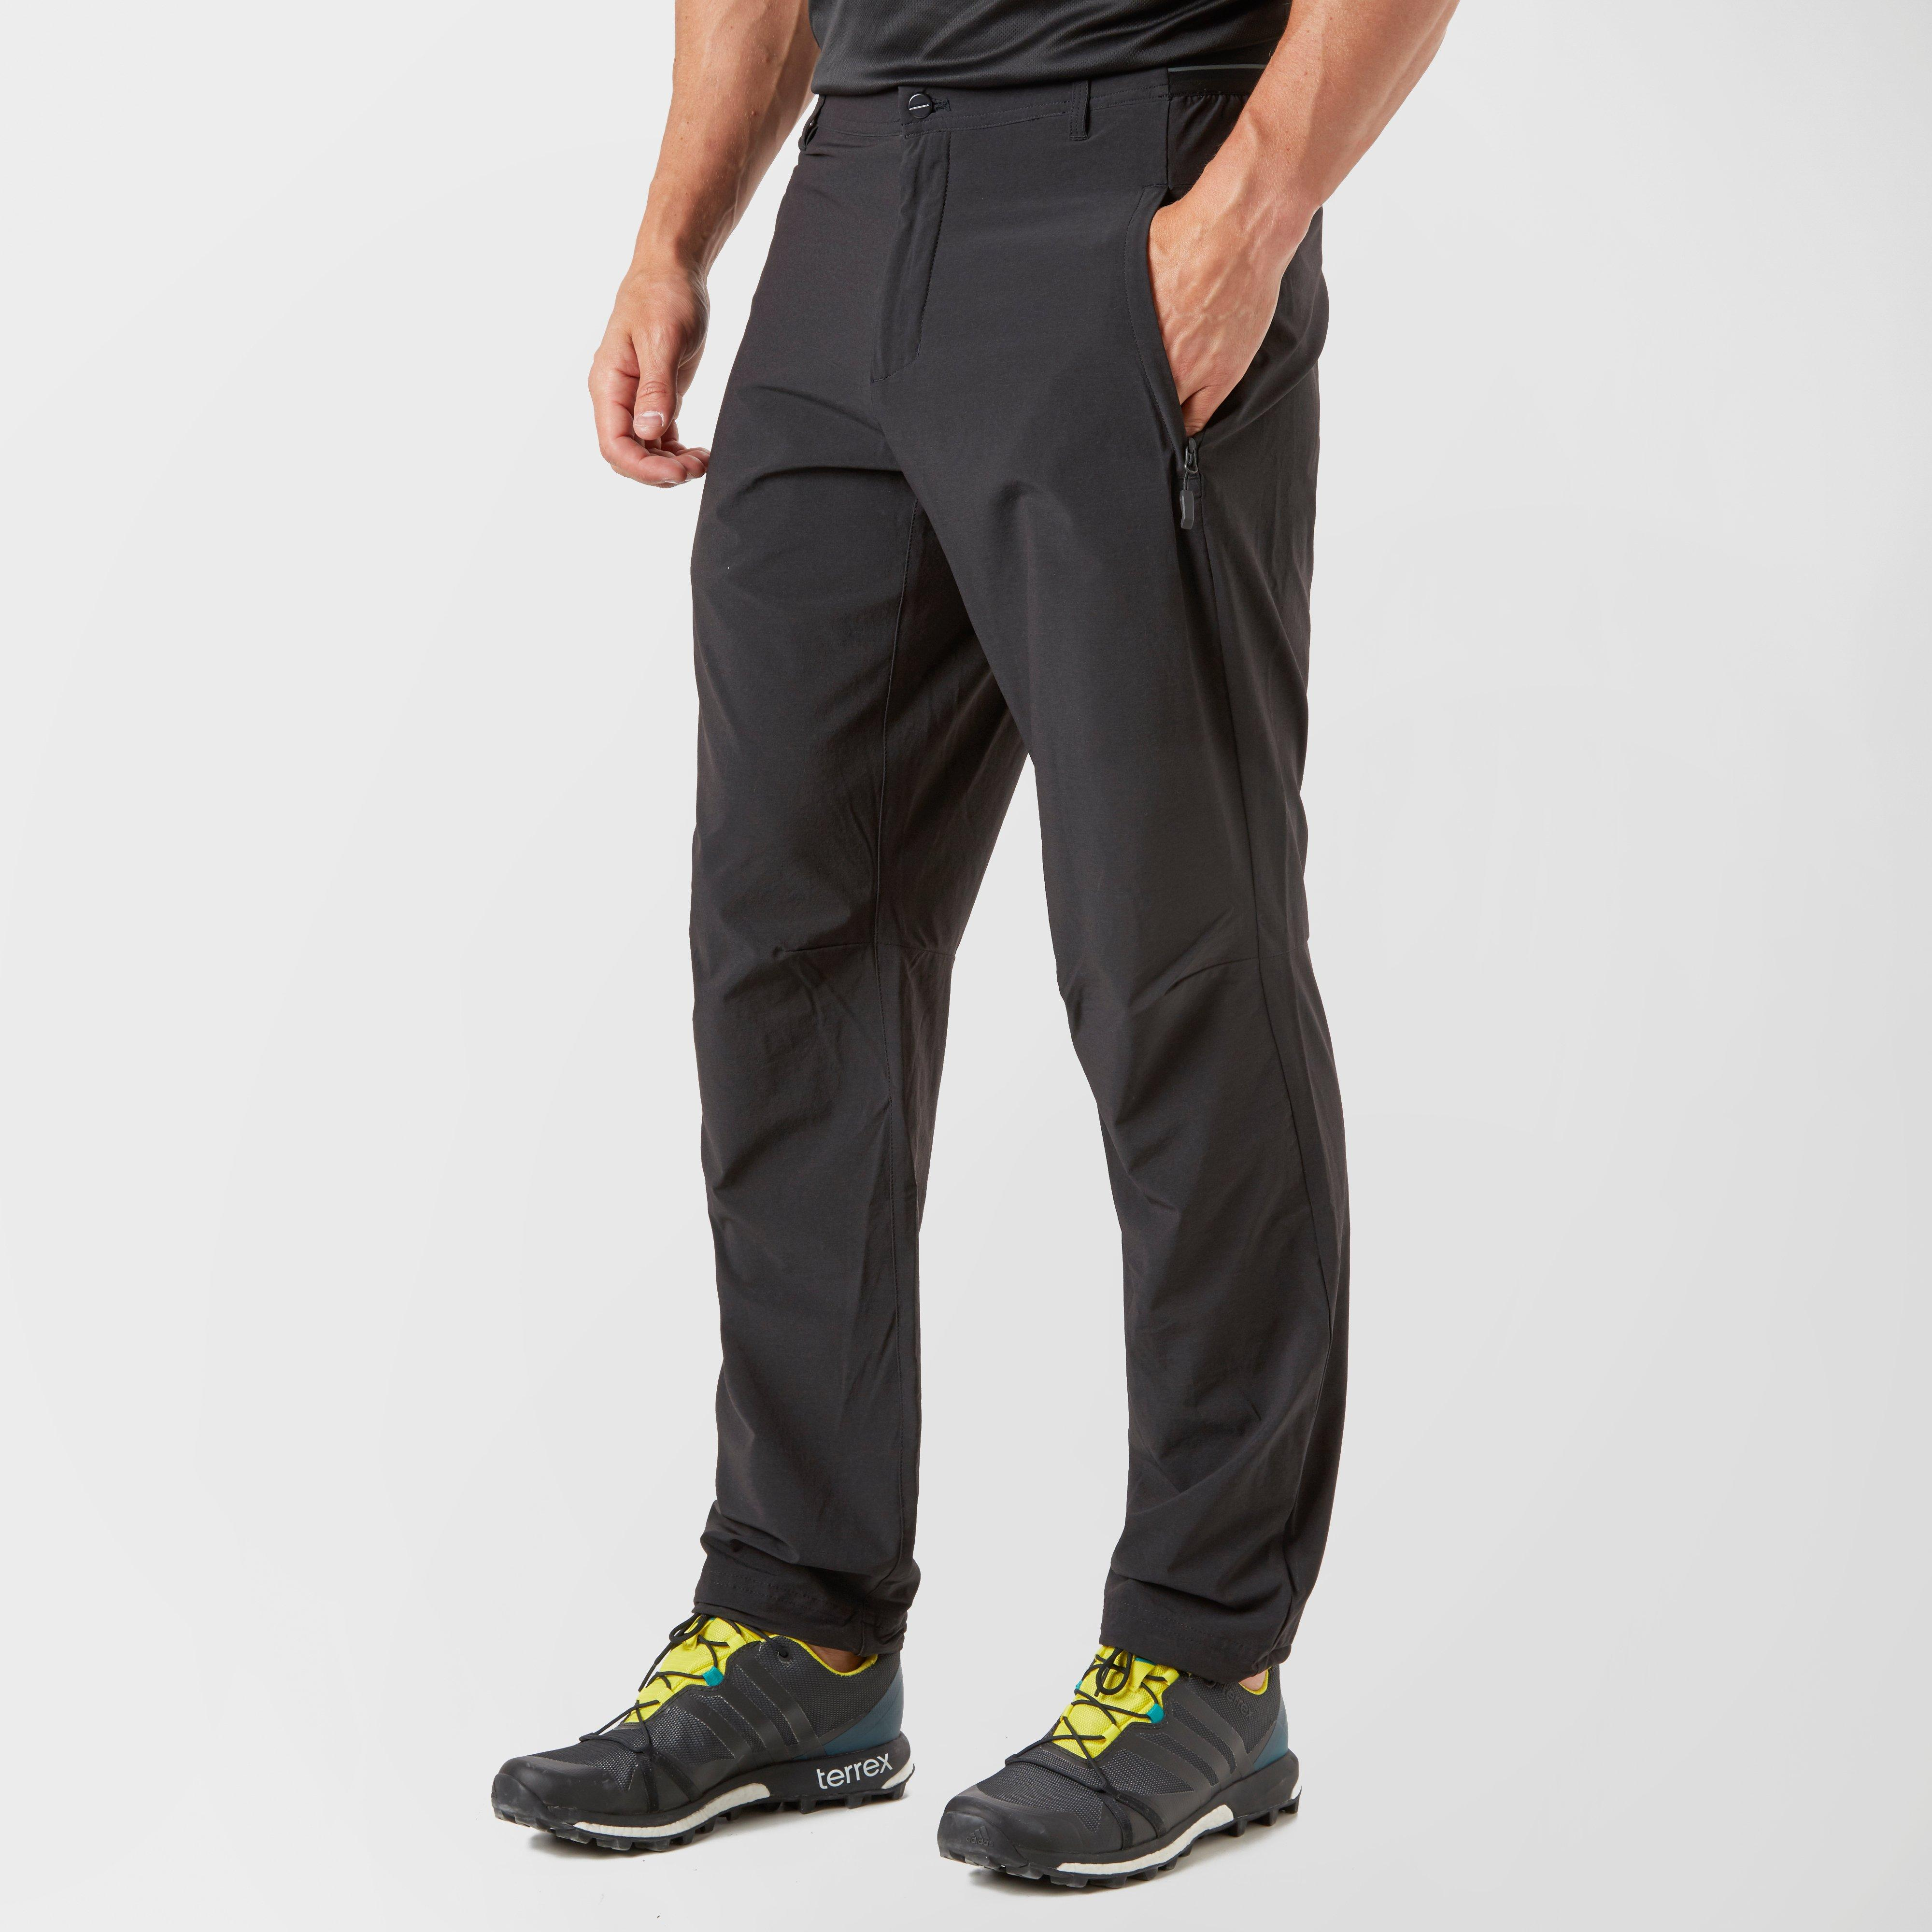 adidas outdoor pants